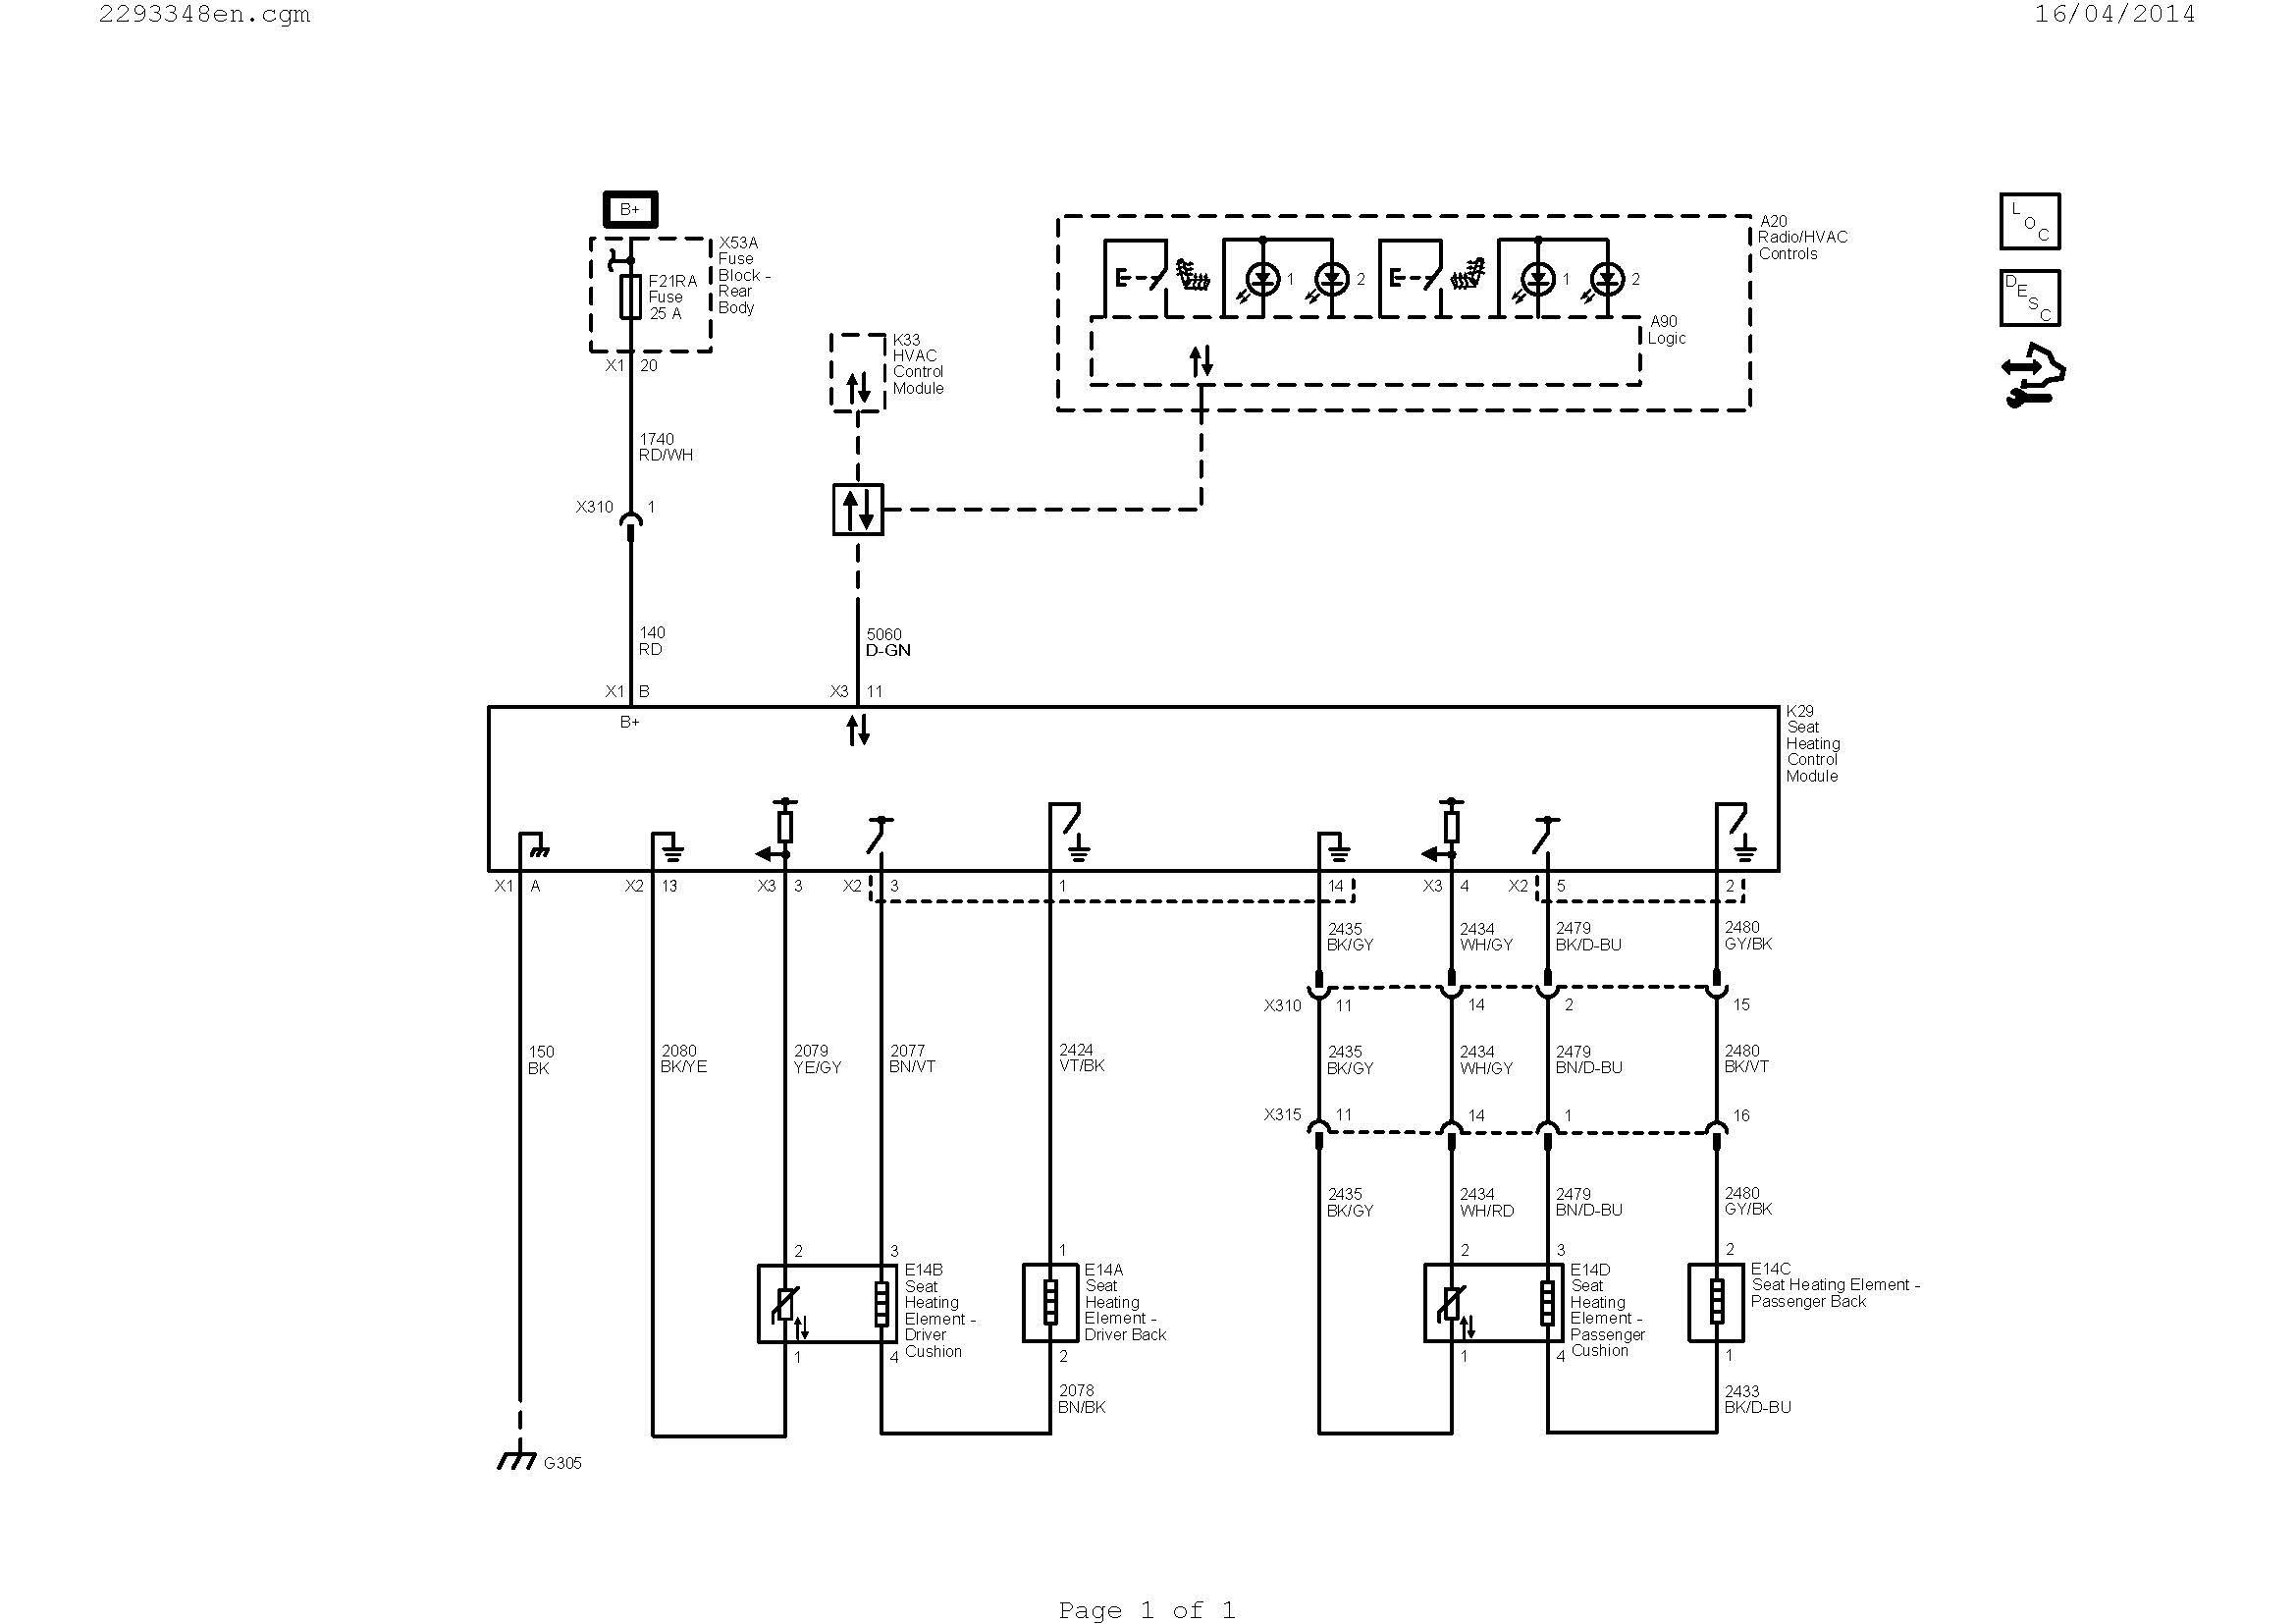 Wiring Diagram Symbol Thermostat on refrigerator schematic diagram, thermostat symbol, thermostat troubleshooting, thermostat manual, baseboard heat diagram, thermostat installation, air conditioning diagram, thermostat cover, thermostat switch, honeywell thermostat diagram, thermostat schematic diagram, thermostat housing, wall heater thermostat diagram, circuit diagram, thermostat cable, thermostat clip art, thermostat white-rodgers wiringheatpump, thermostat wire, controls for gas valve diagram,